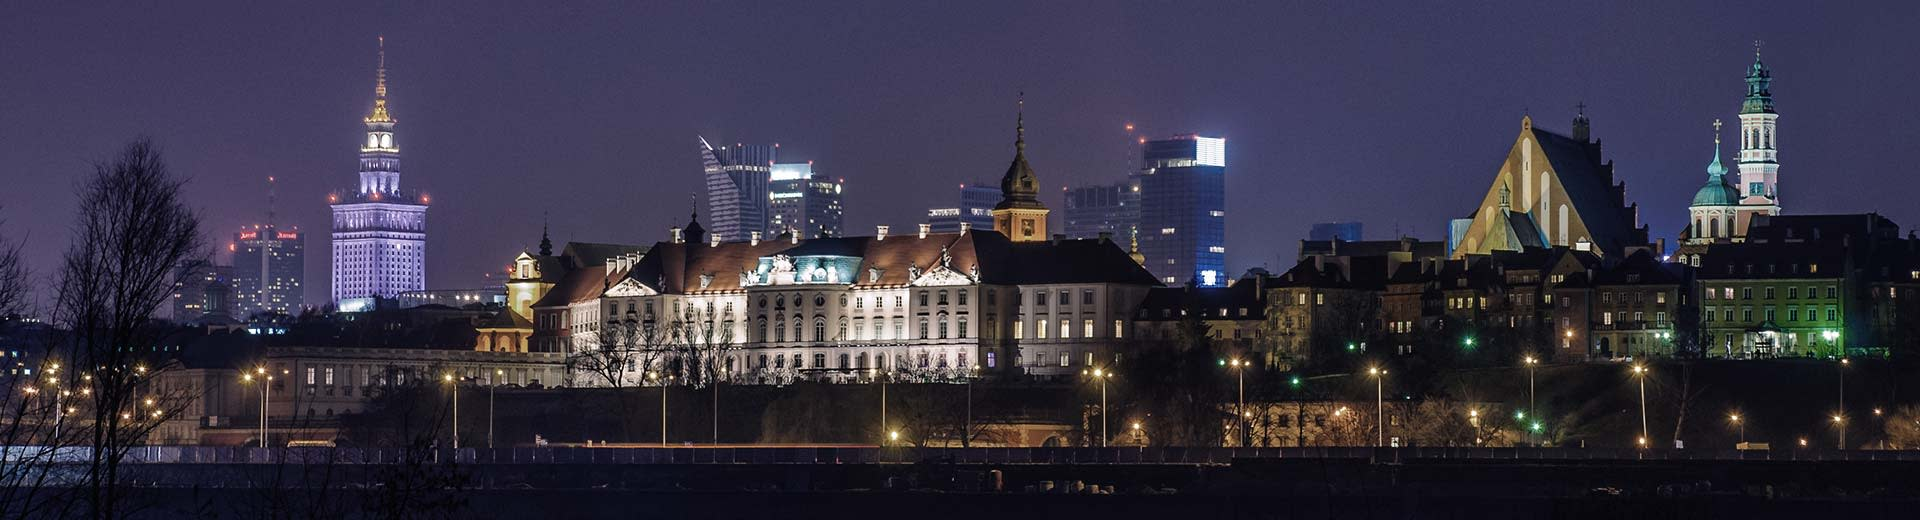 The famous Warsaw Palace of Culture and Science dominates the background, while in front are low-rise Polish apartments